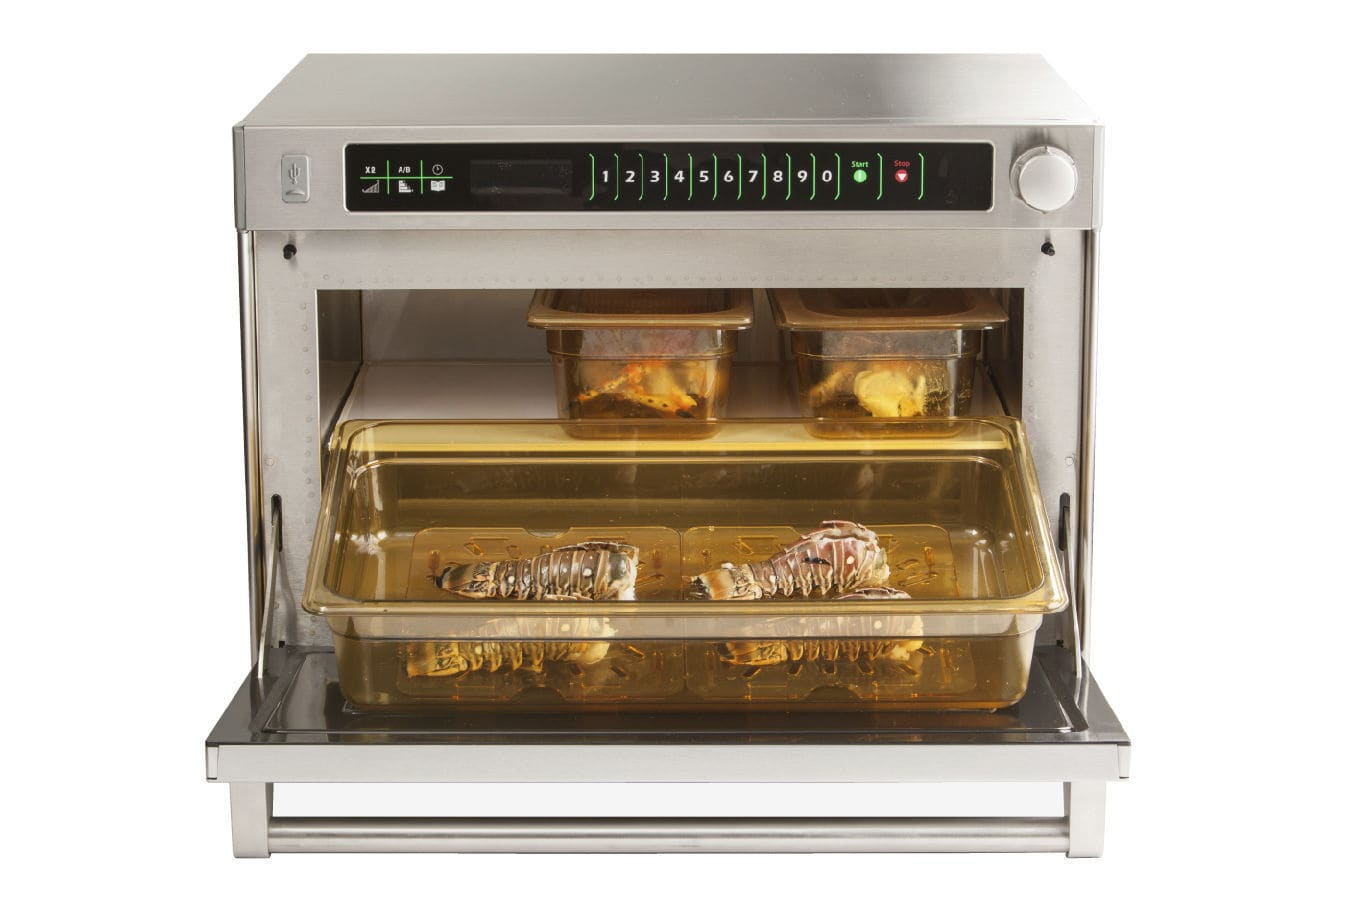 Electric Oven Commercial Microwave Convection Mso22 Acp Menumaster Amana